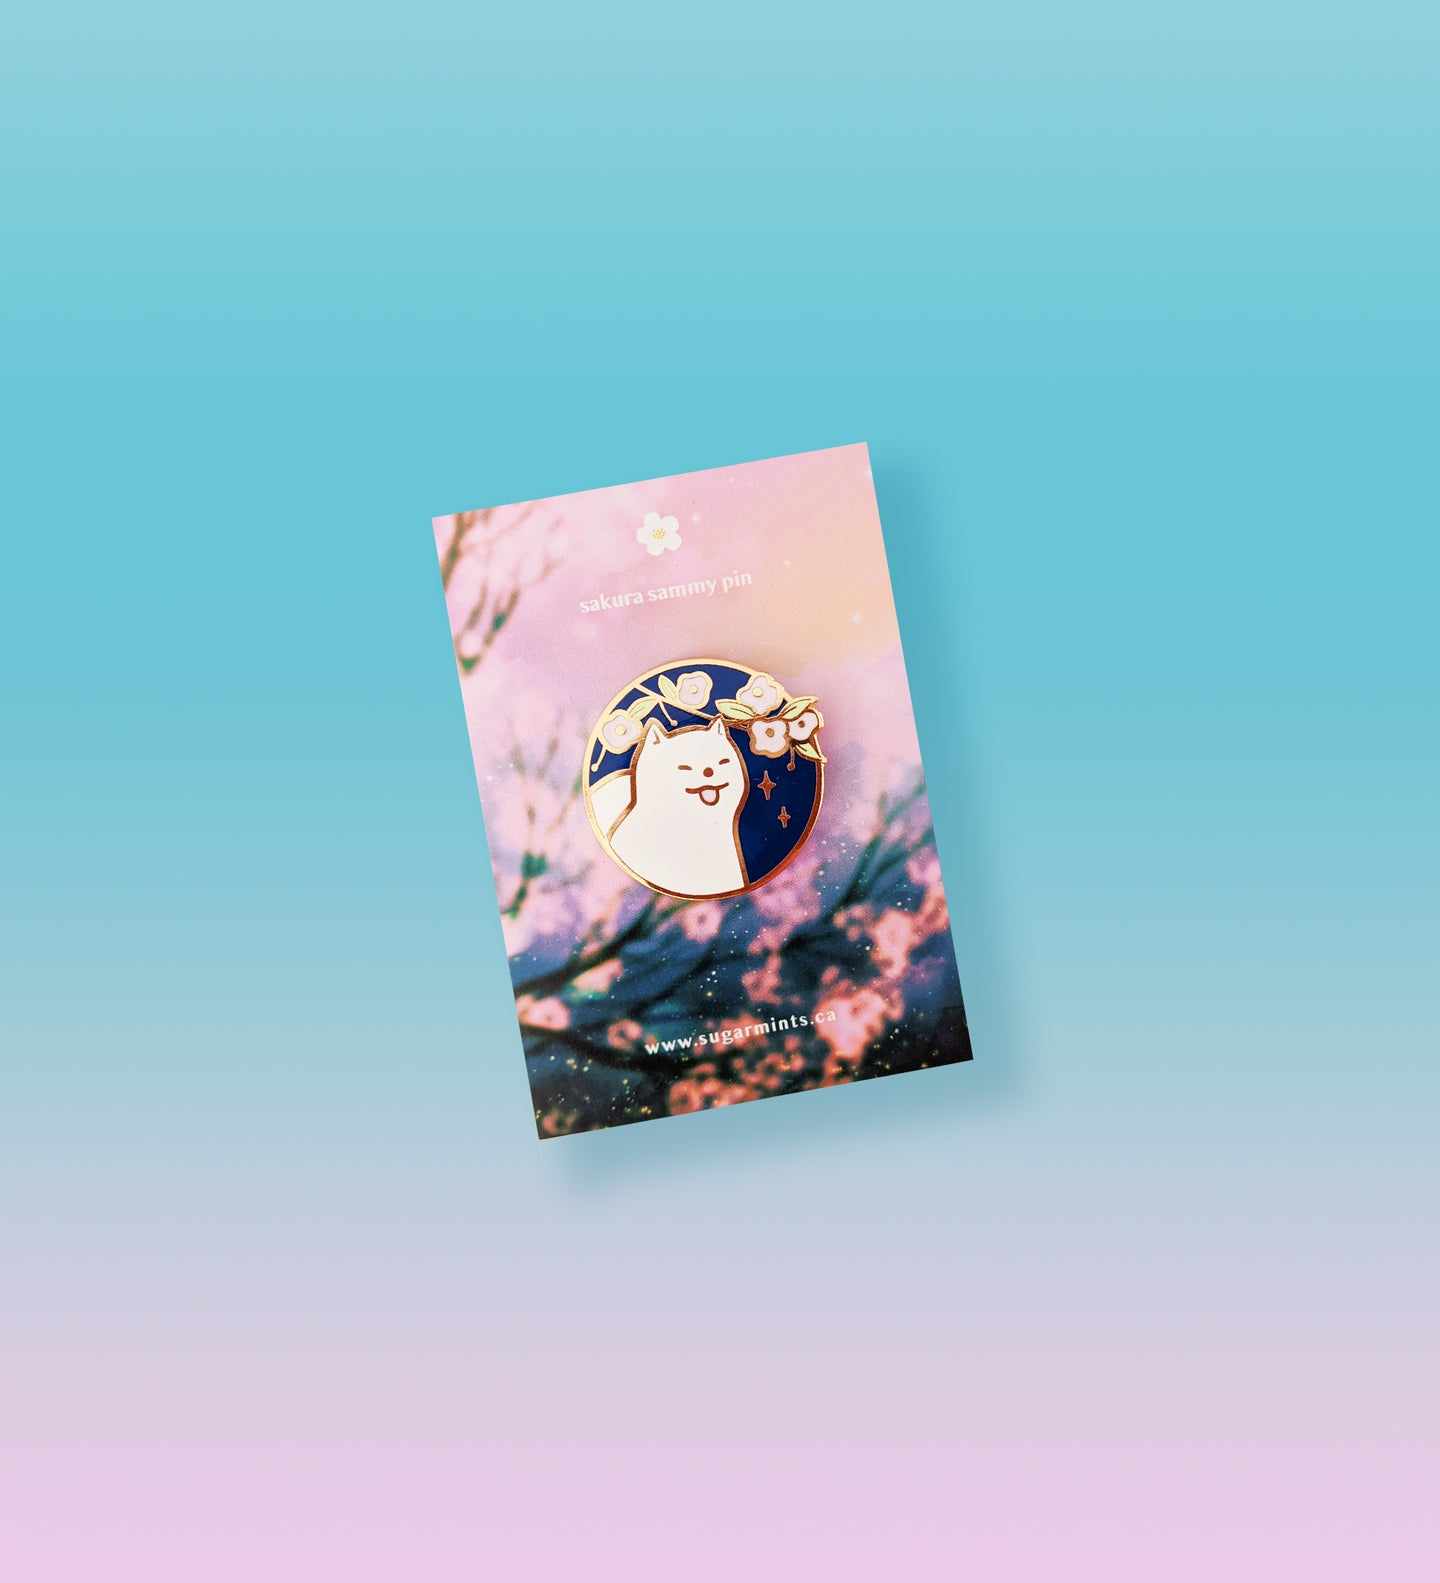 Sakura Samoyed Enamel Pin - Sugarmints Artstore